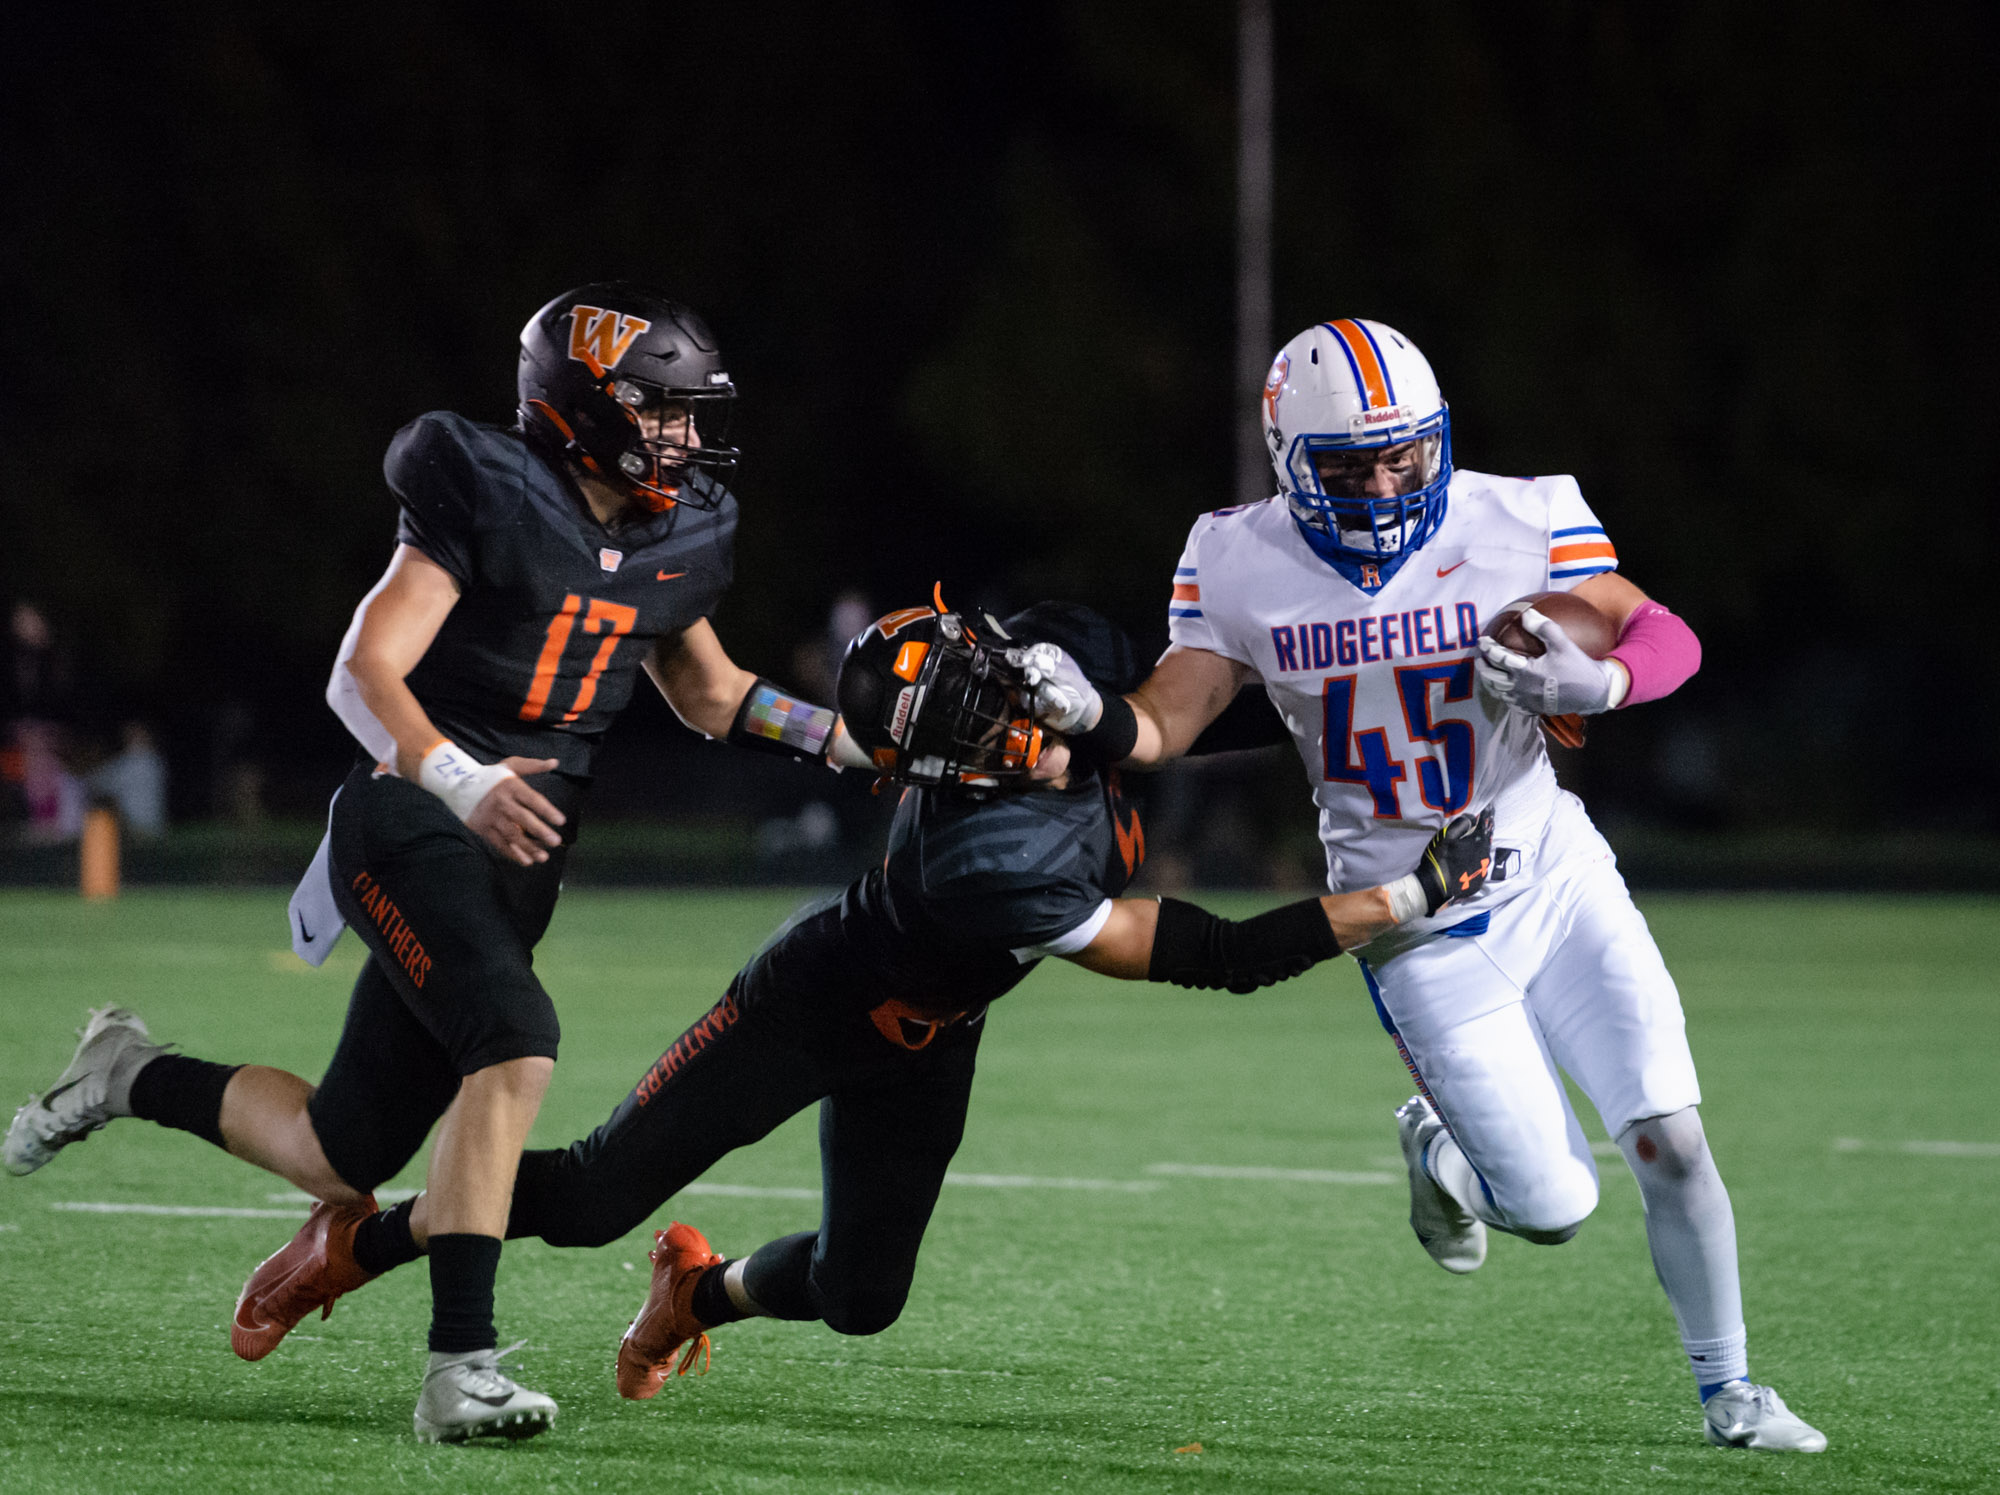 Ridgefield's Connor Delamarter stiff arms a Washougal defender in a 2A Greater St. Helens League football game on Friday, Oct. 1, 2021, at Fishback Stadium in Washougal.